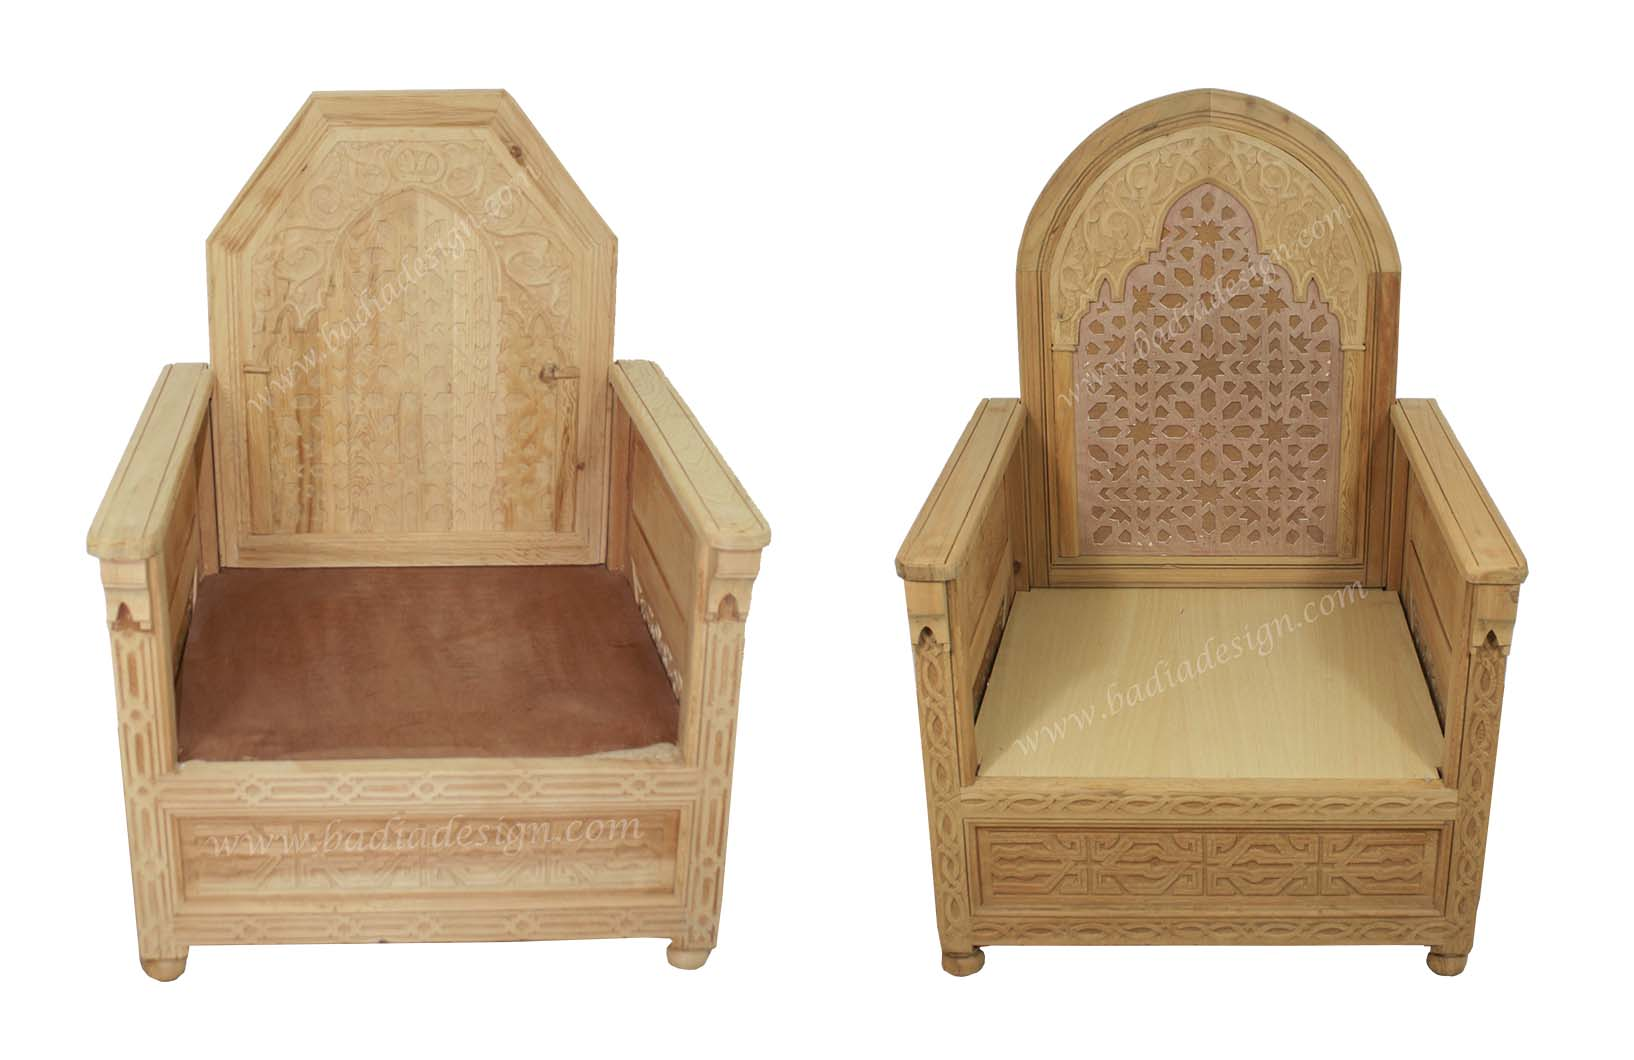 moroccan-unstained-wooden-chair-cw-ch017.jpg